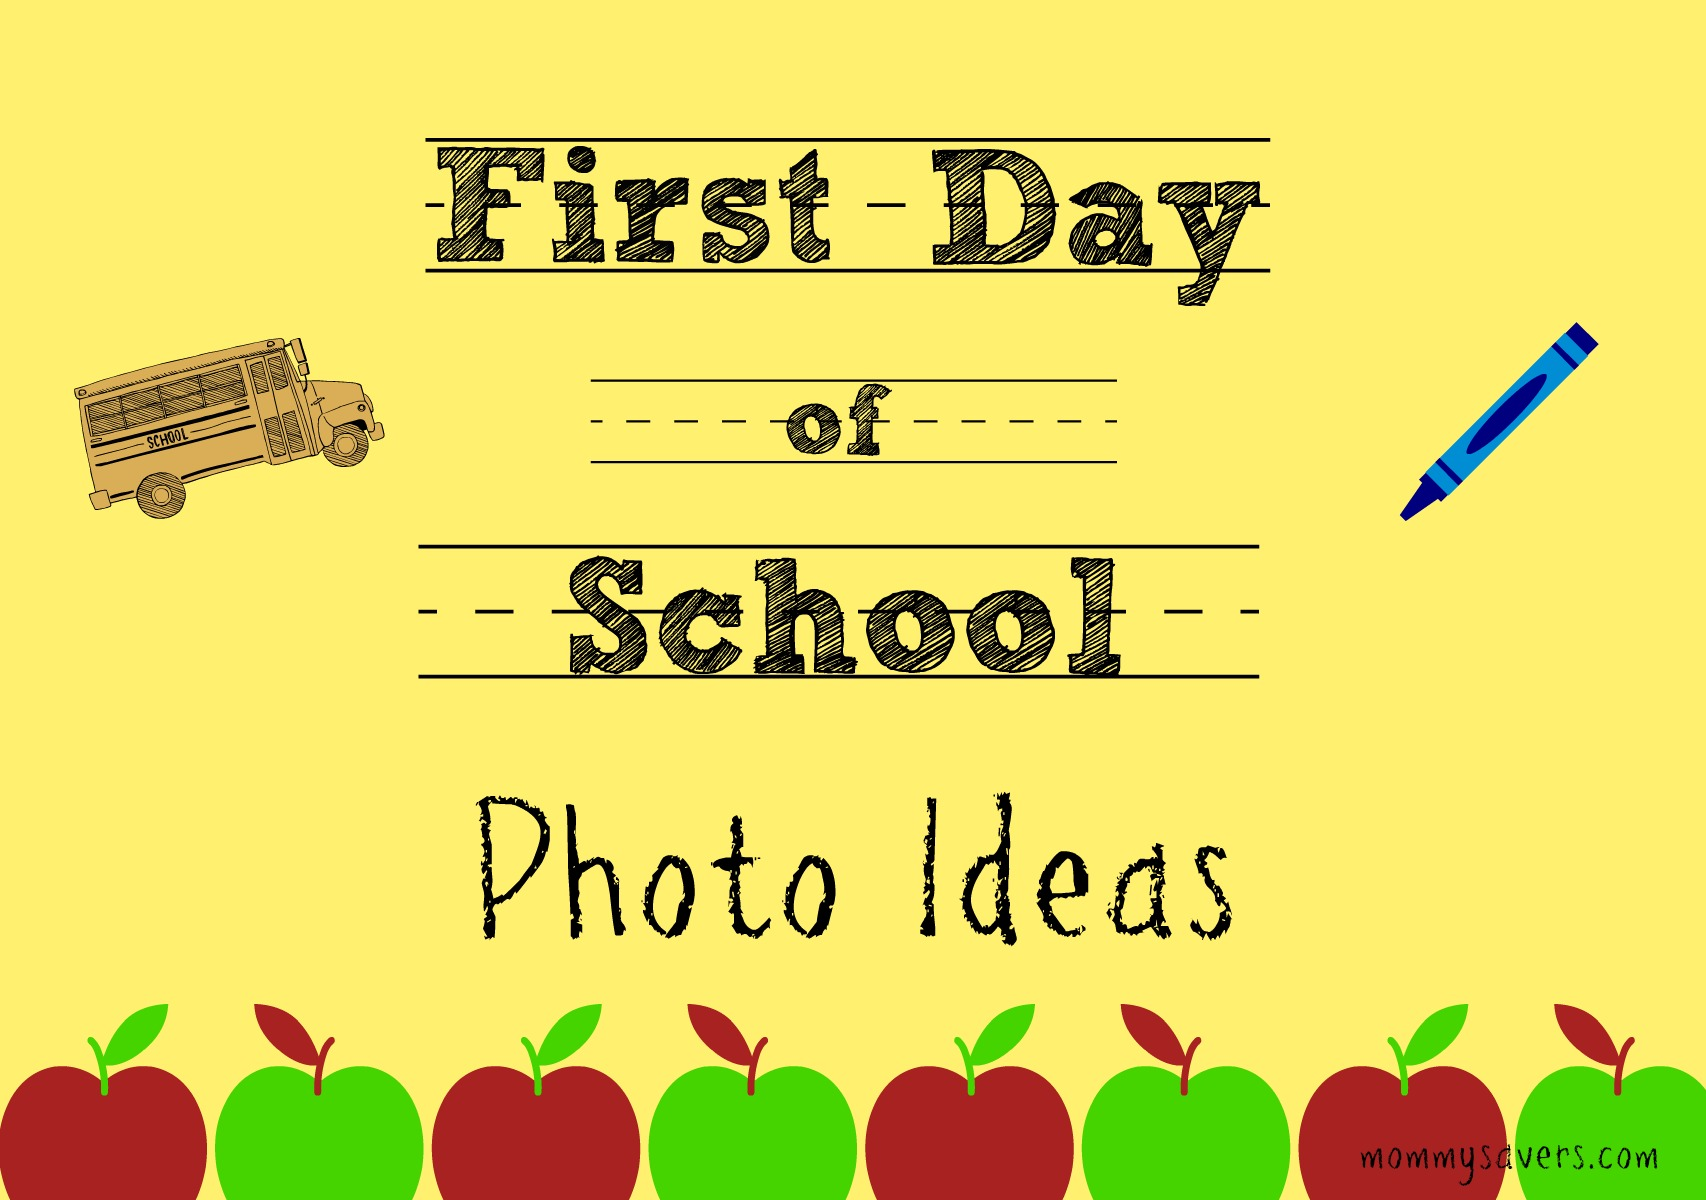 First Day Of School Photo Ideas Mommysavers